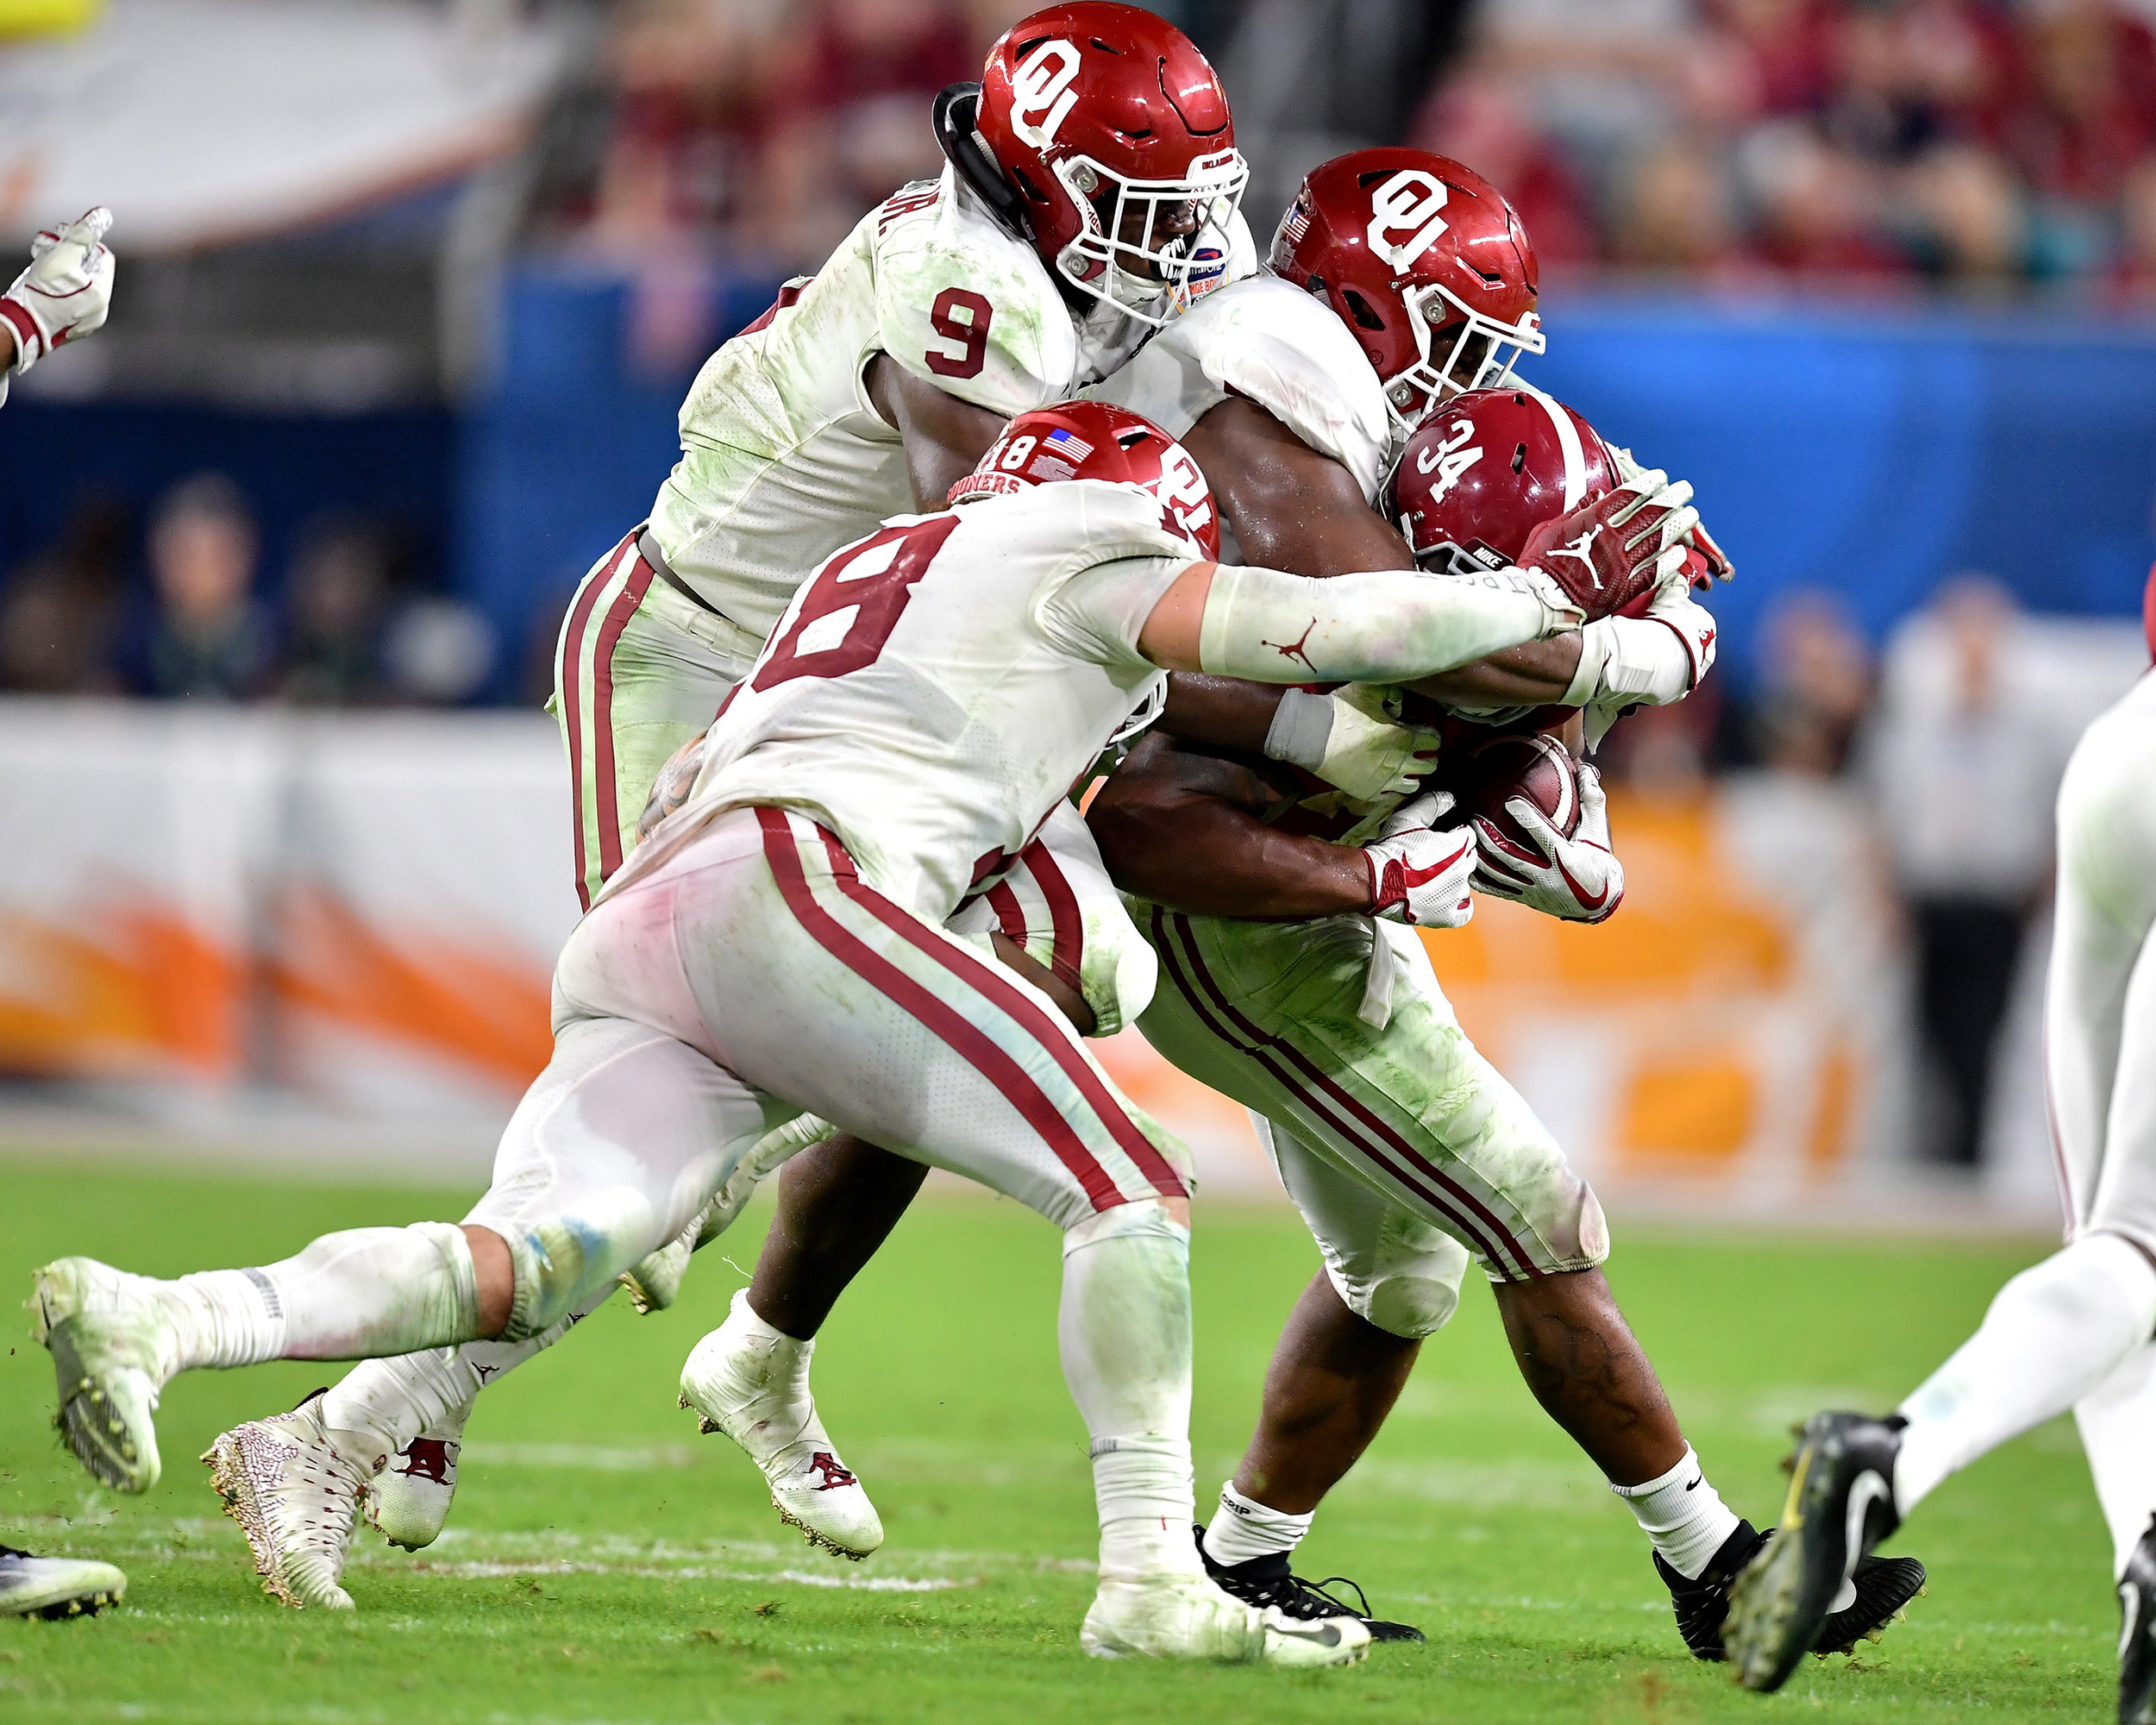 It takes three Oklahoma Sooners to tackle Alabama Crimson Tide running back Damien Harris (34) in the second half of the Capital One Orange Bowl at Hard Rock Stadium in Miami Gardens, Fla., Saturday, Dec. 29, 2018. Alabama wins 45-34. (Photo by Lee Walls)